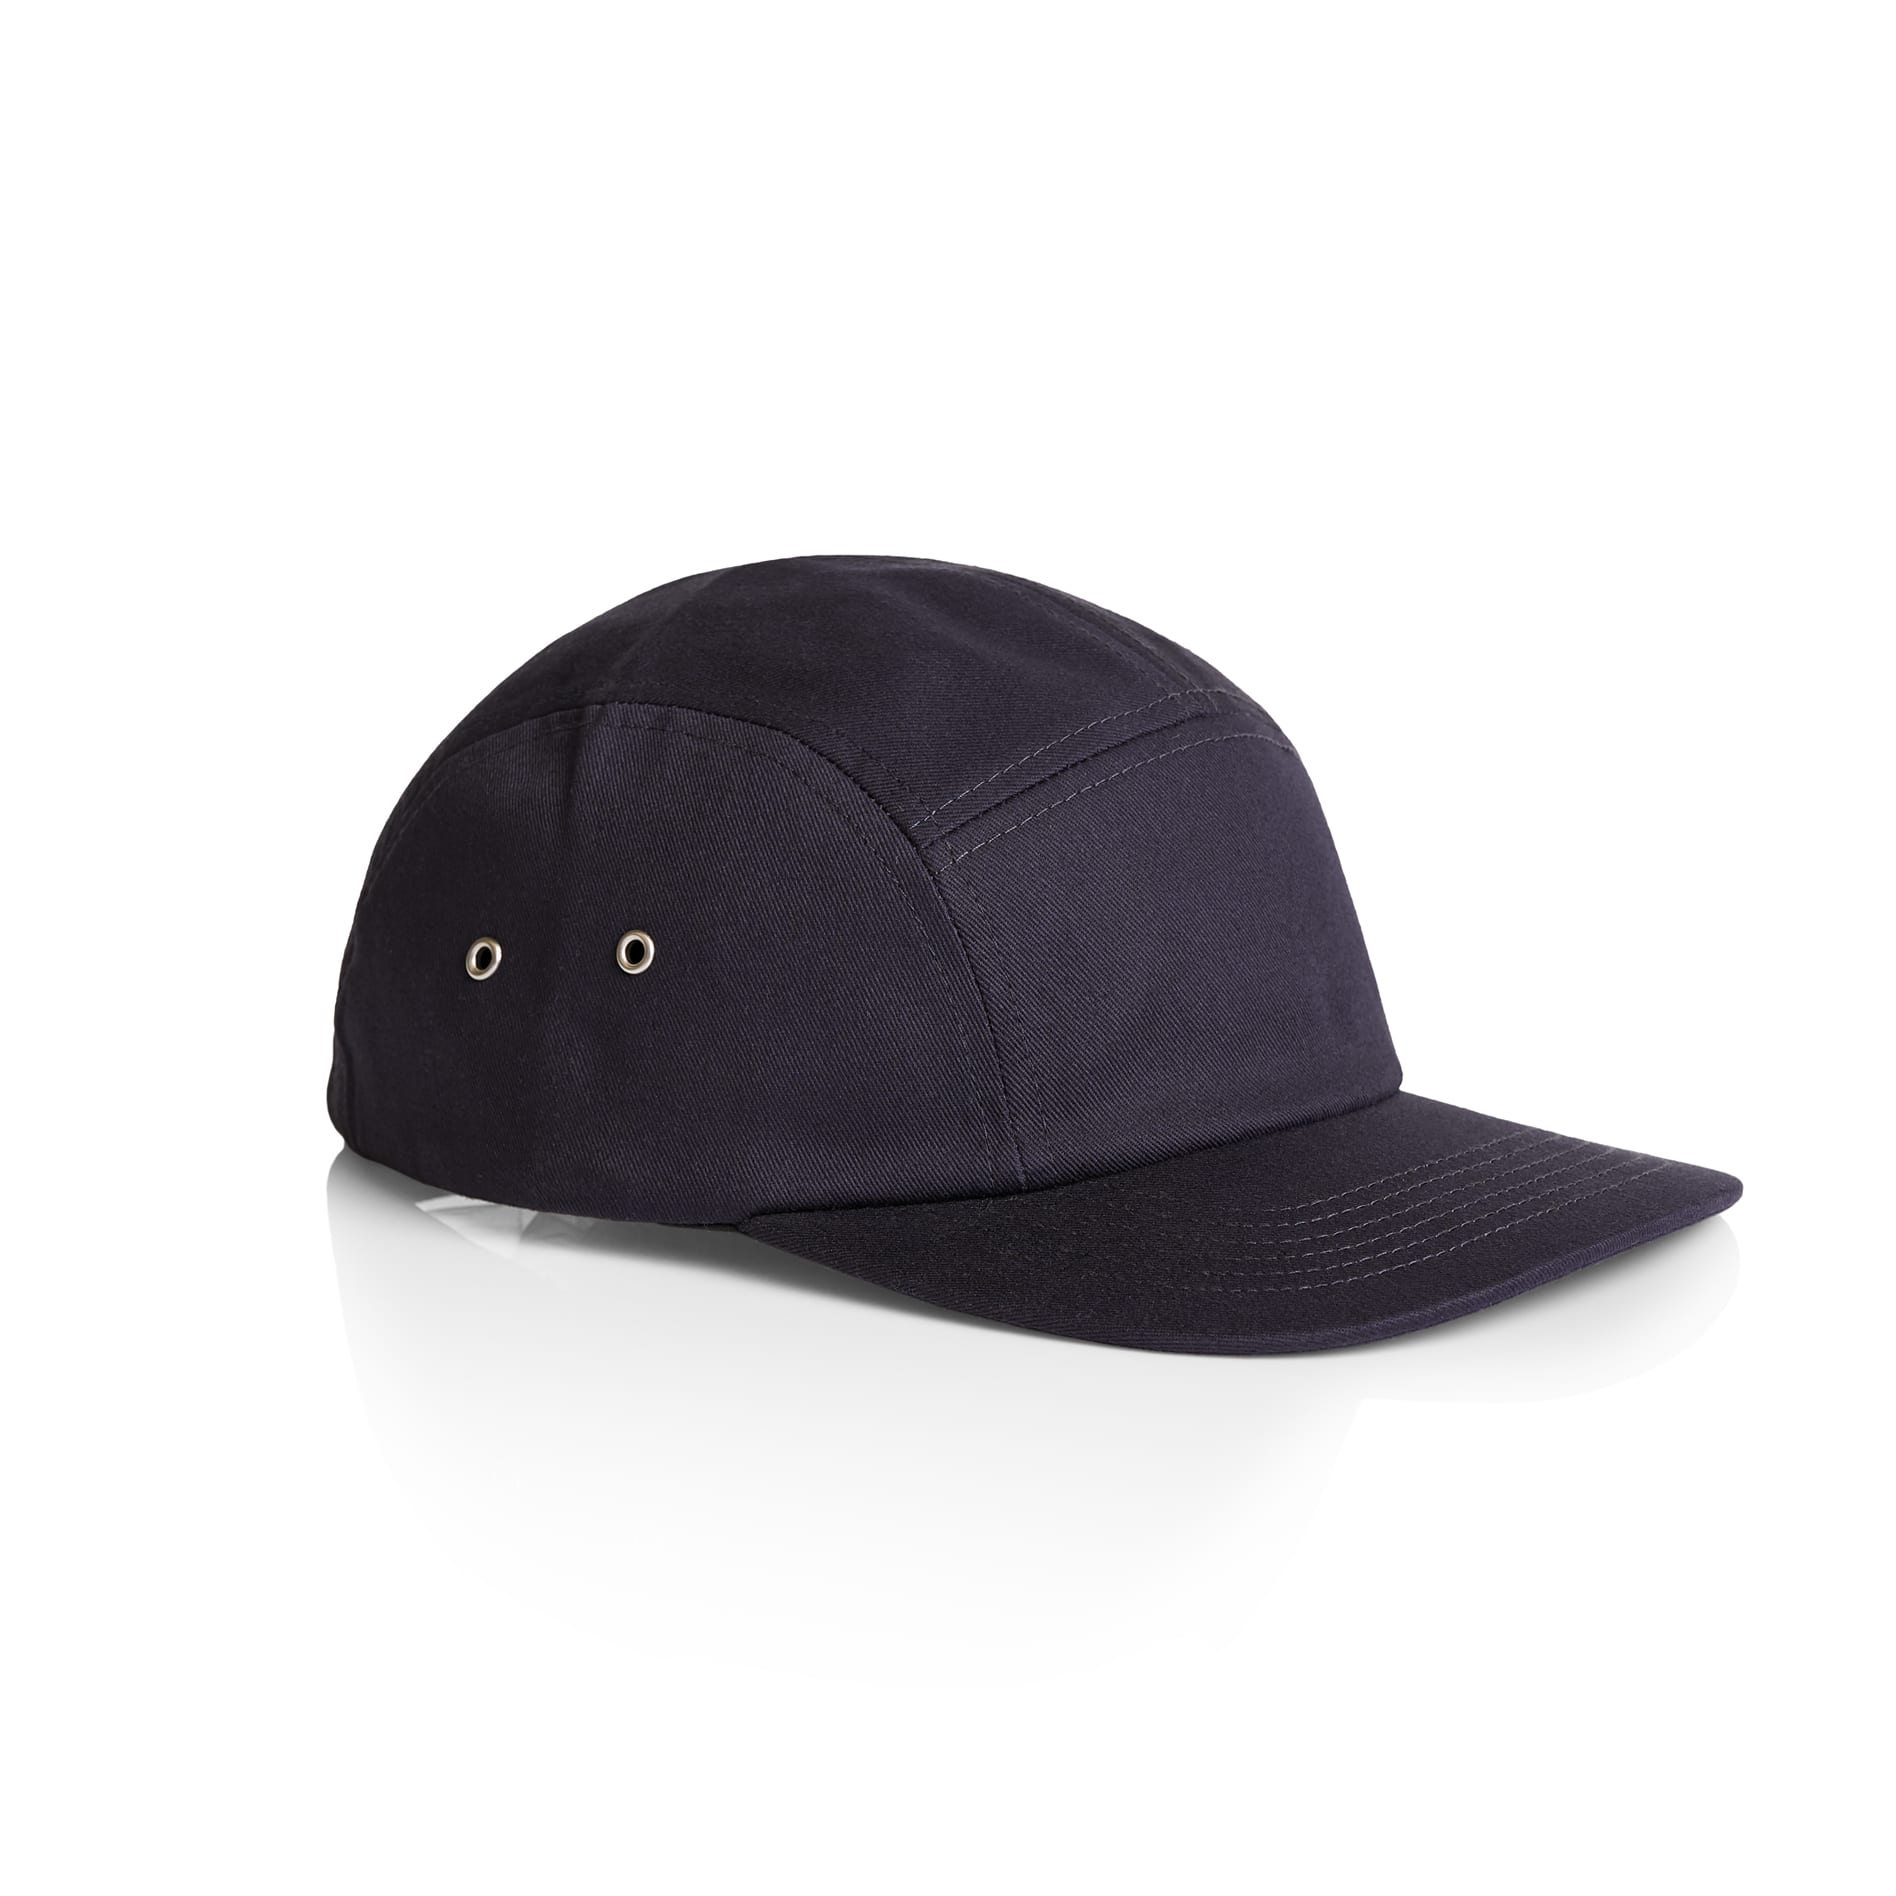 AS 1103 Finn Cap